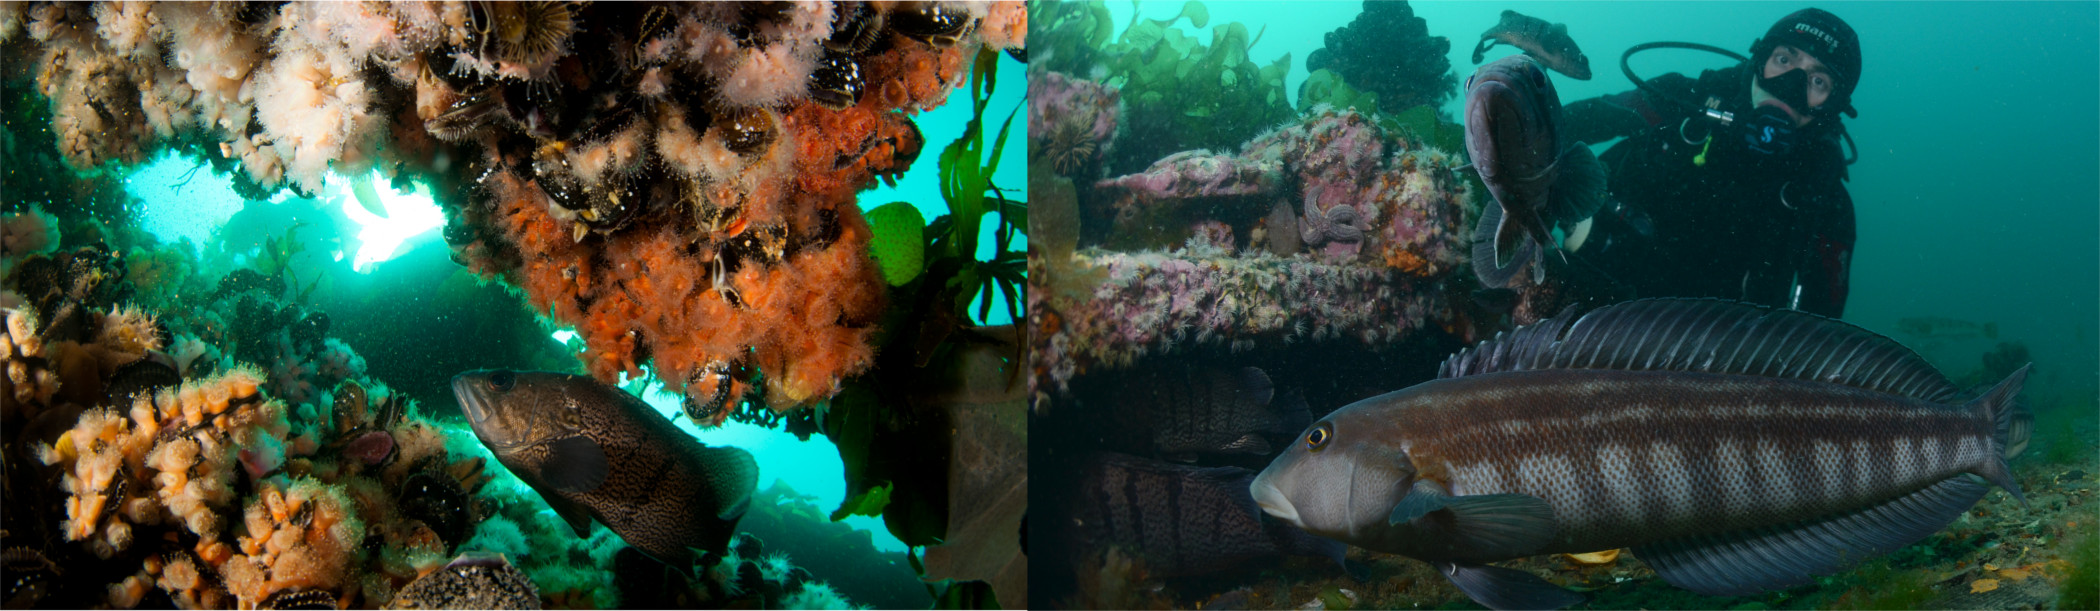 Diving sites Abramar Buceo